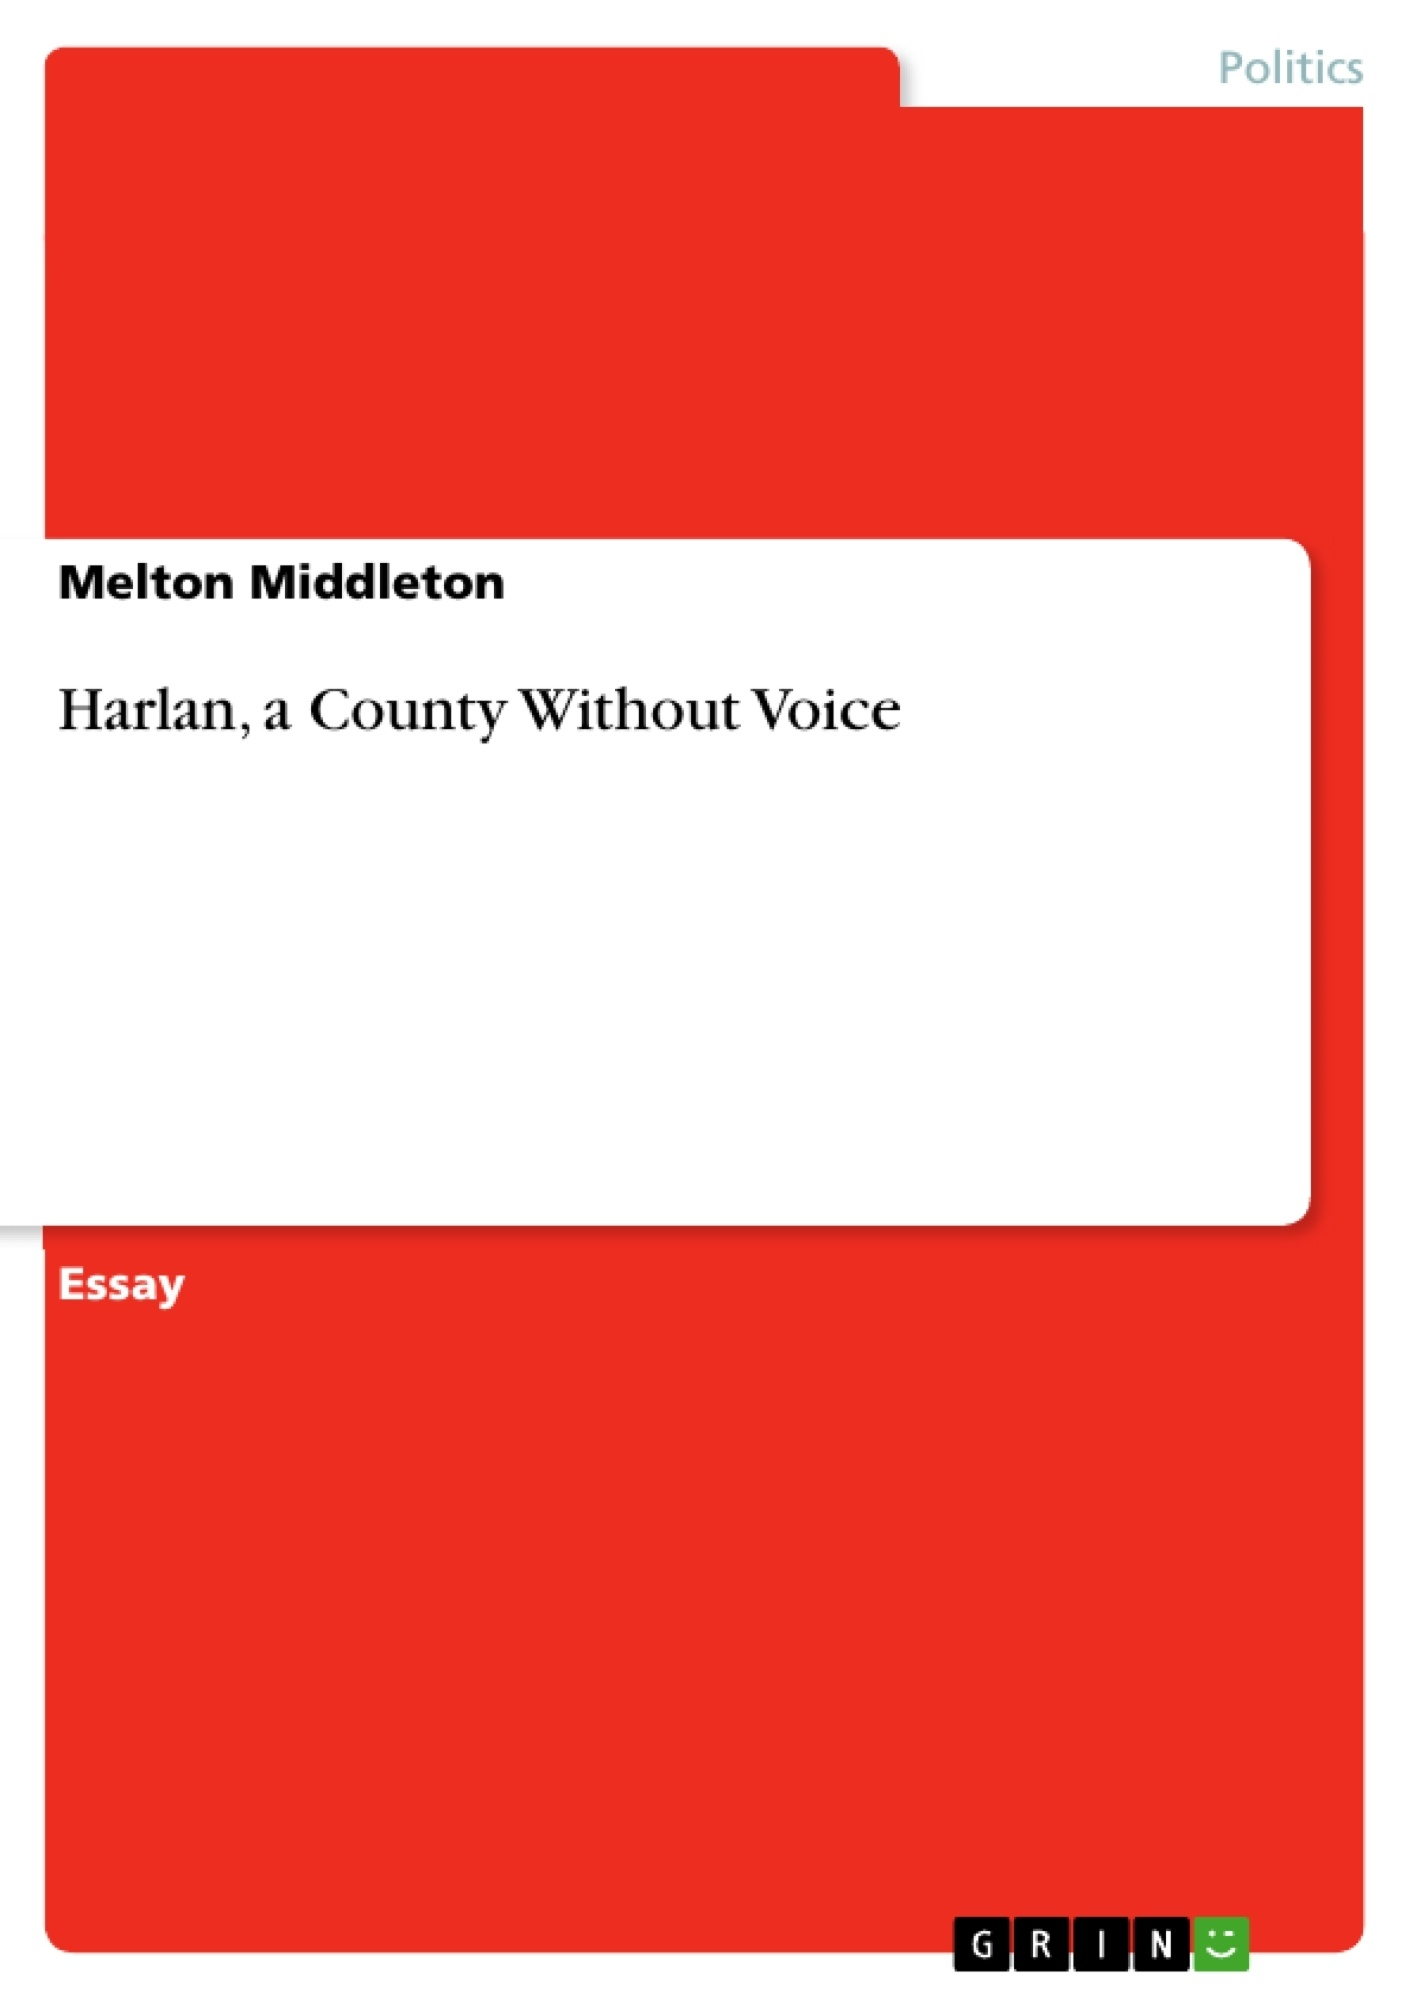 Title: Harlan, a County Without Voice